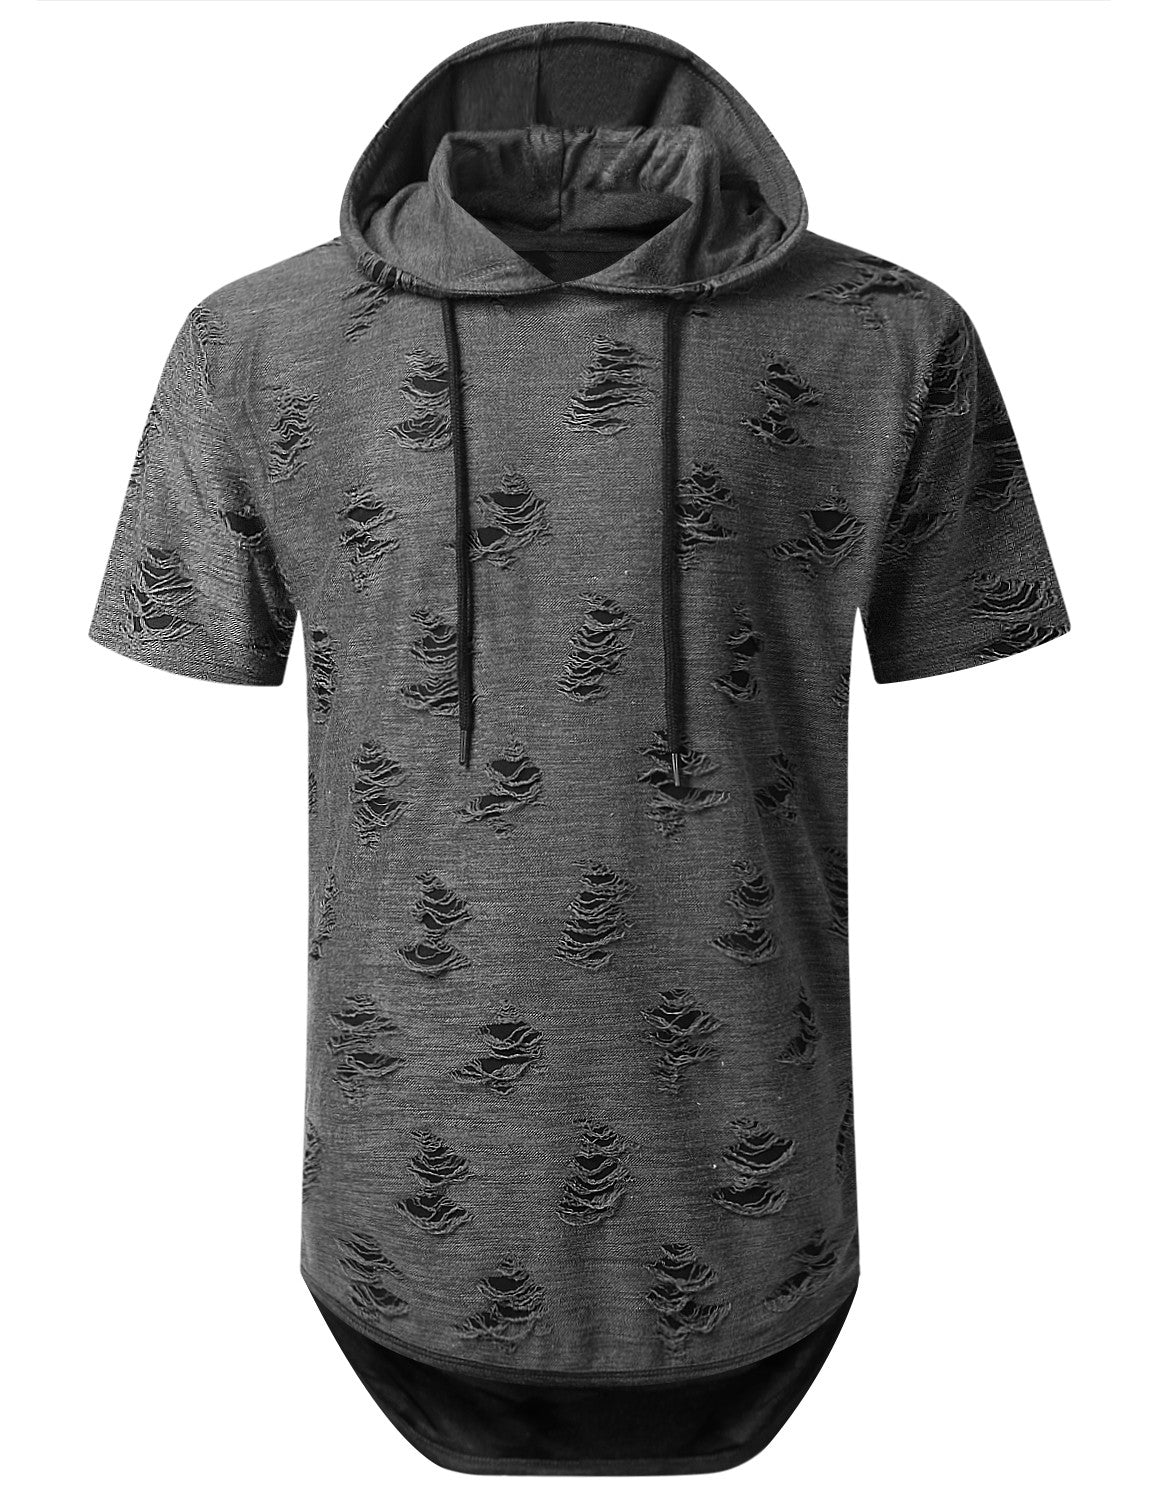 GRAY Ripped Lightweight Short Sleeve Hoodie - URBANCREWS